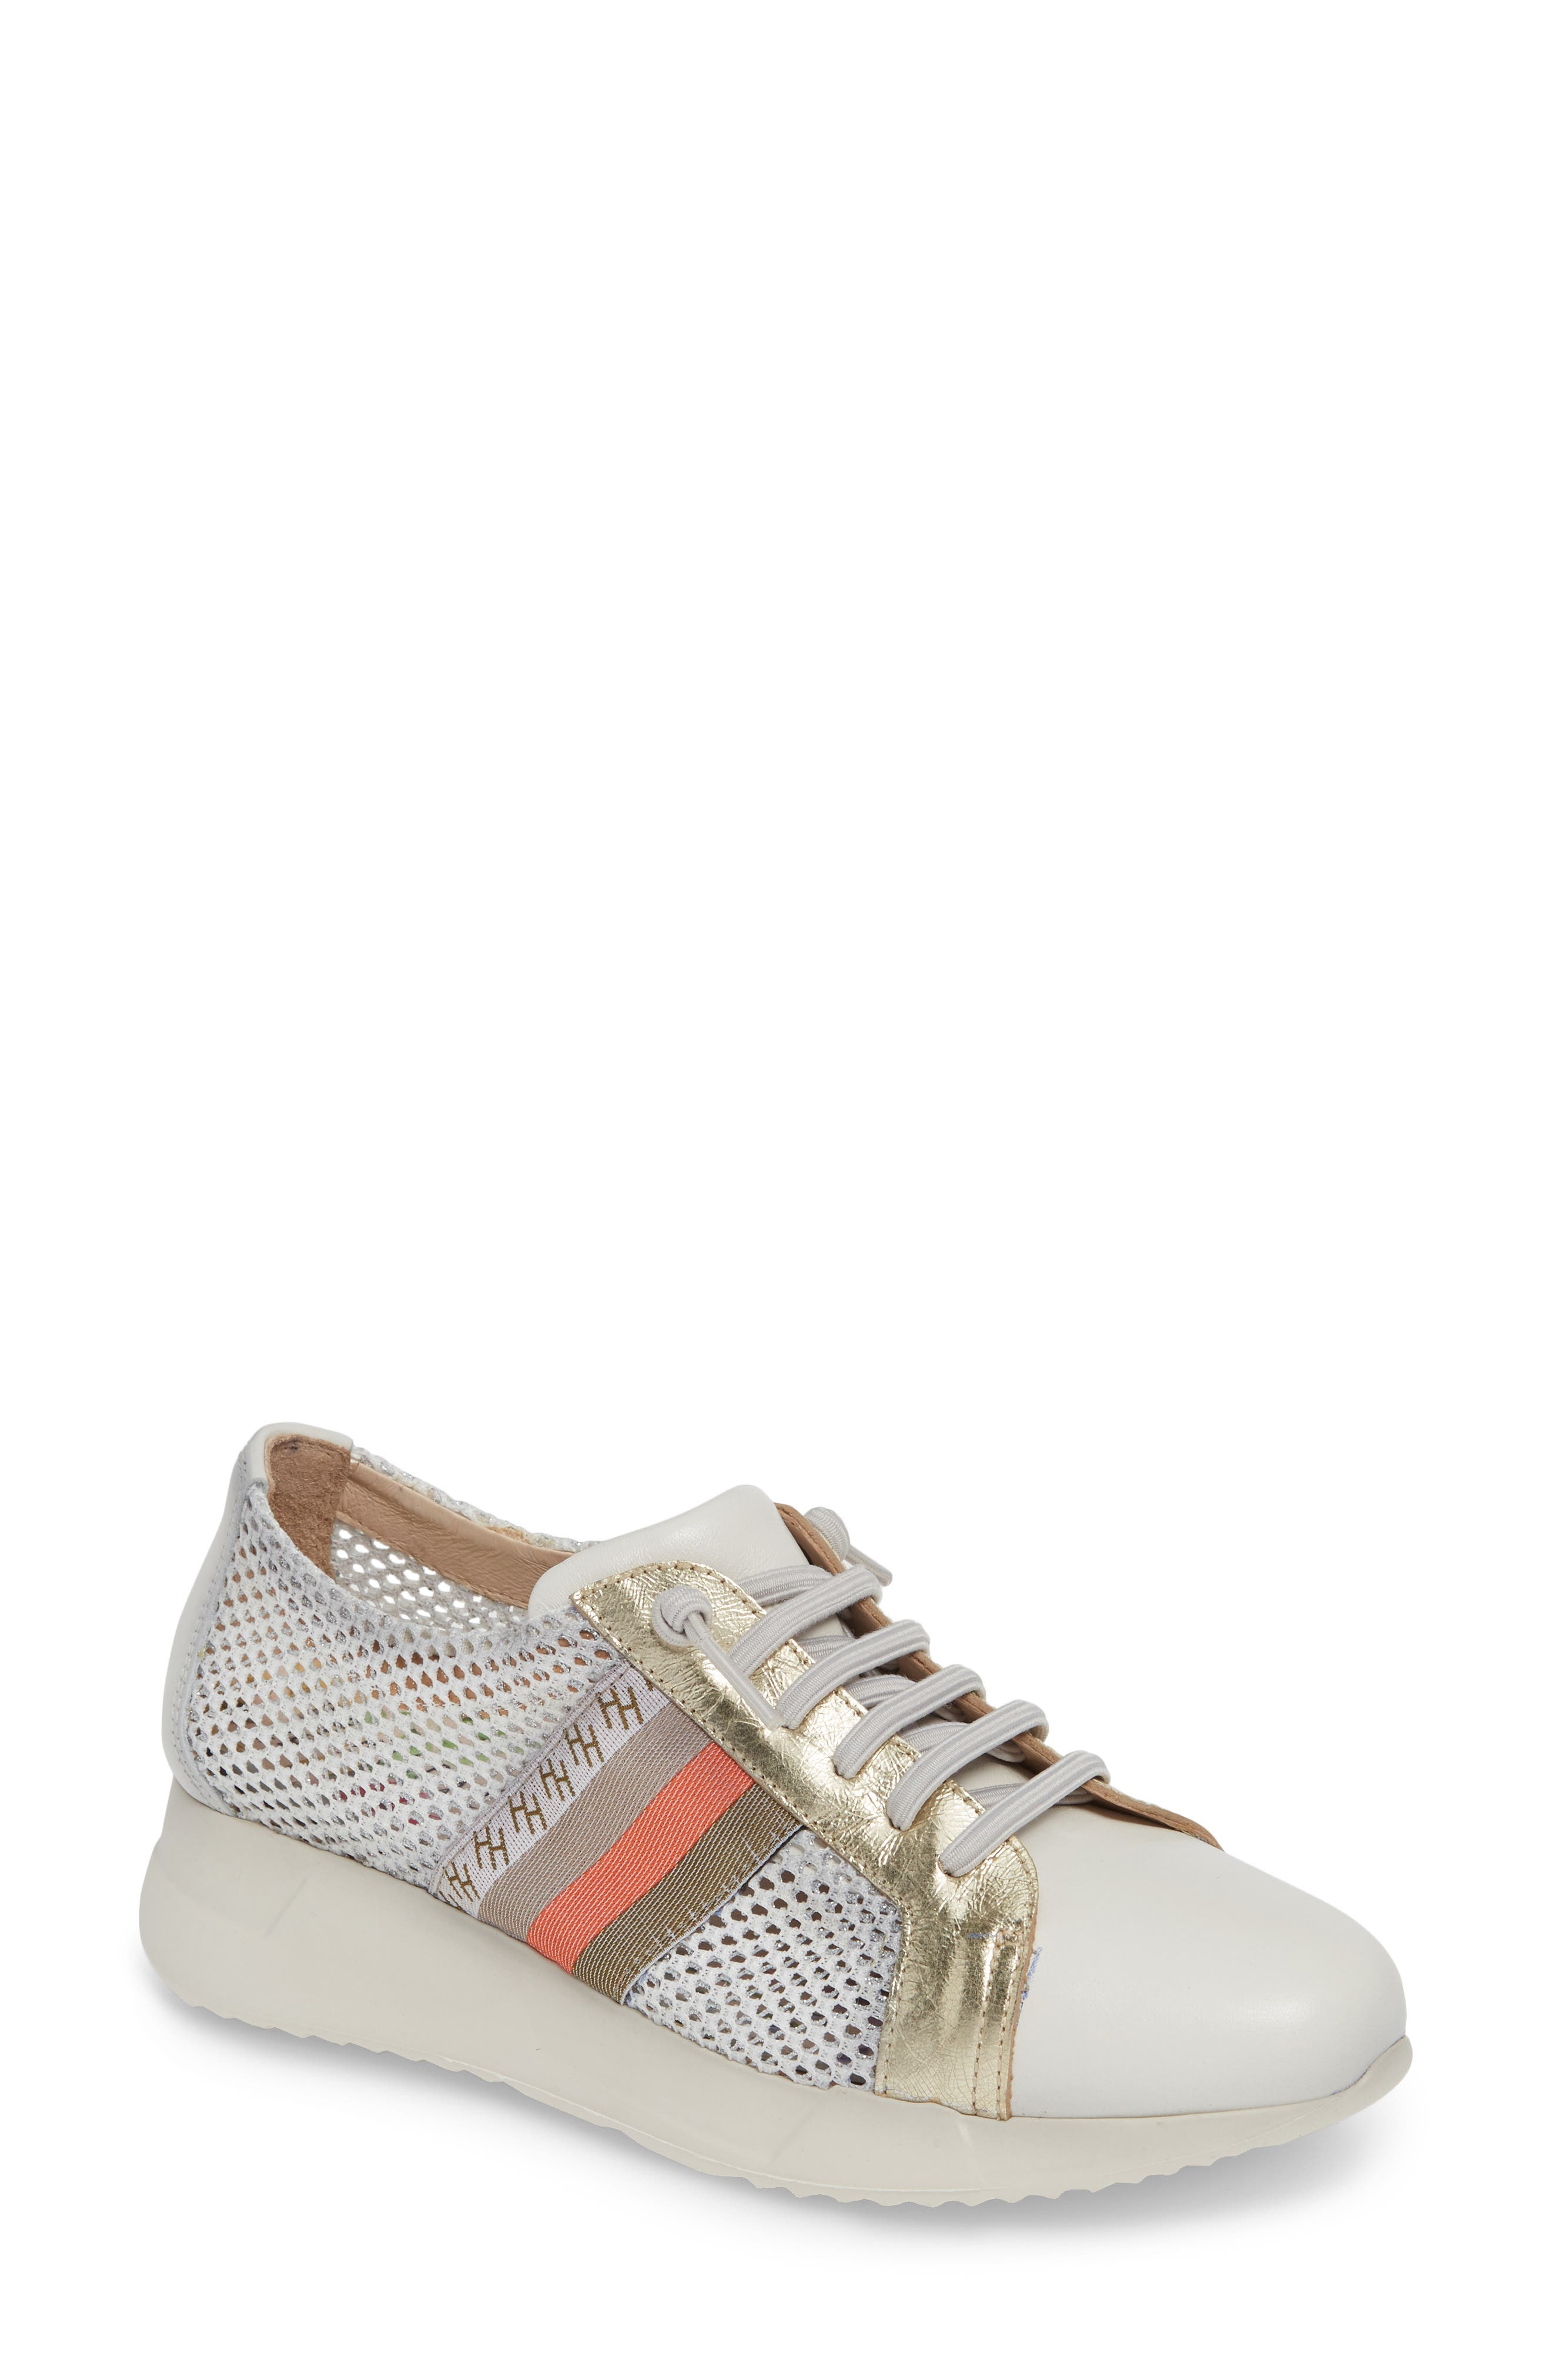 HISPANITAS Stephanie Platform Sneaker, Main, color, WHITE LEATHER